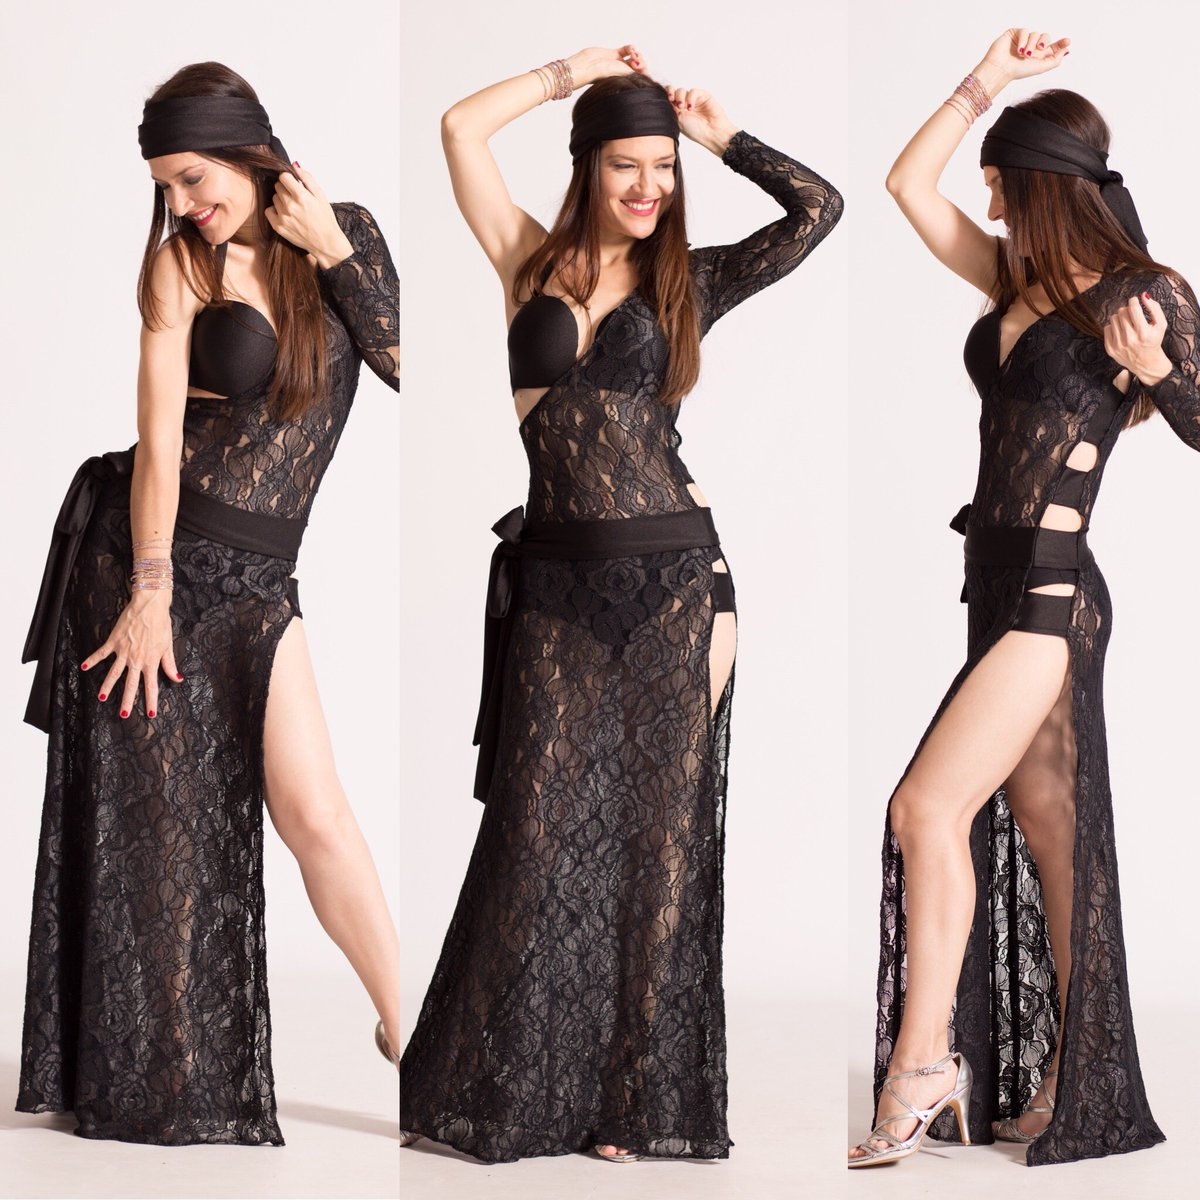 Newww Bellydance Galabeya RDV SHOP!!!Made to measure!!!Different colours available!!! #bellydancecostume #orientaldance #danseorientale #danzaorientale #danzadelvientre #danzaoriental #rdvshop http://bit.ly/1PGZv56 pic.twitter.com/q3fXFznjjH